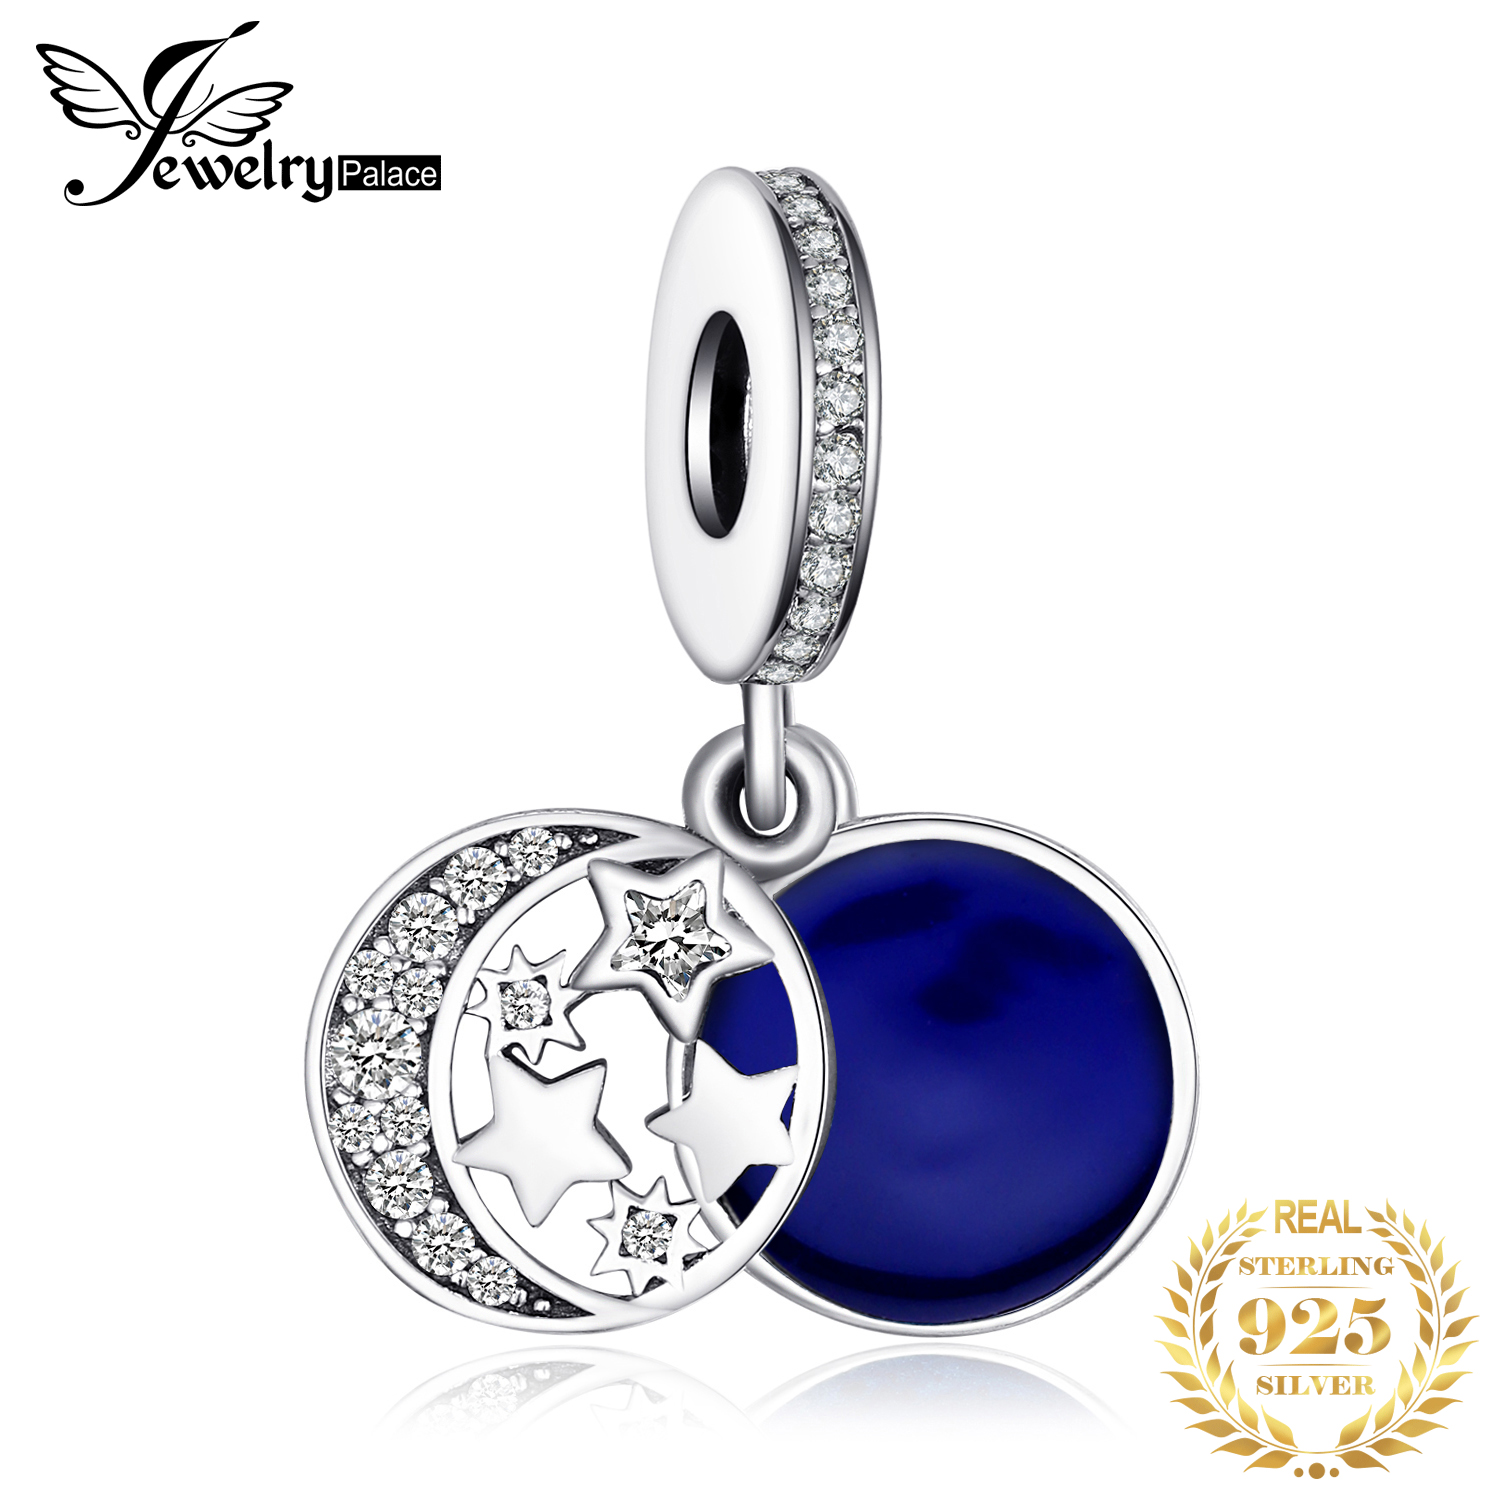 JewelryPalace Blue Moon Star 925 Sterling Silver Bead Charms Silver 925 Original For Bracelet Silver 925 Original Jewelry Making